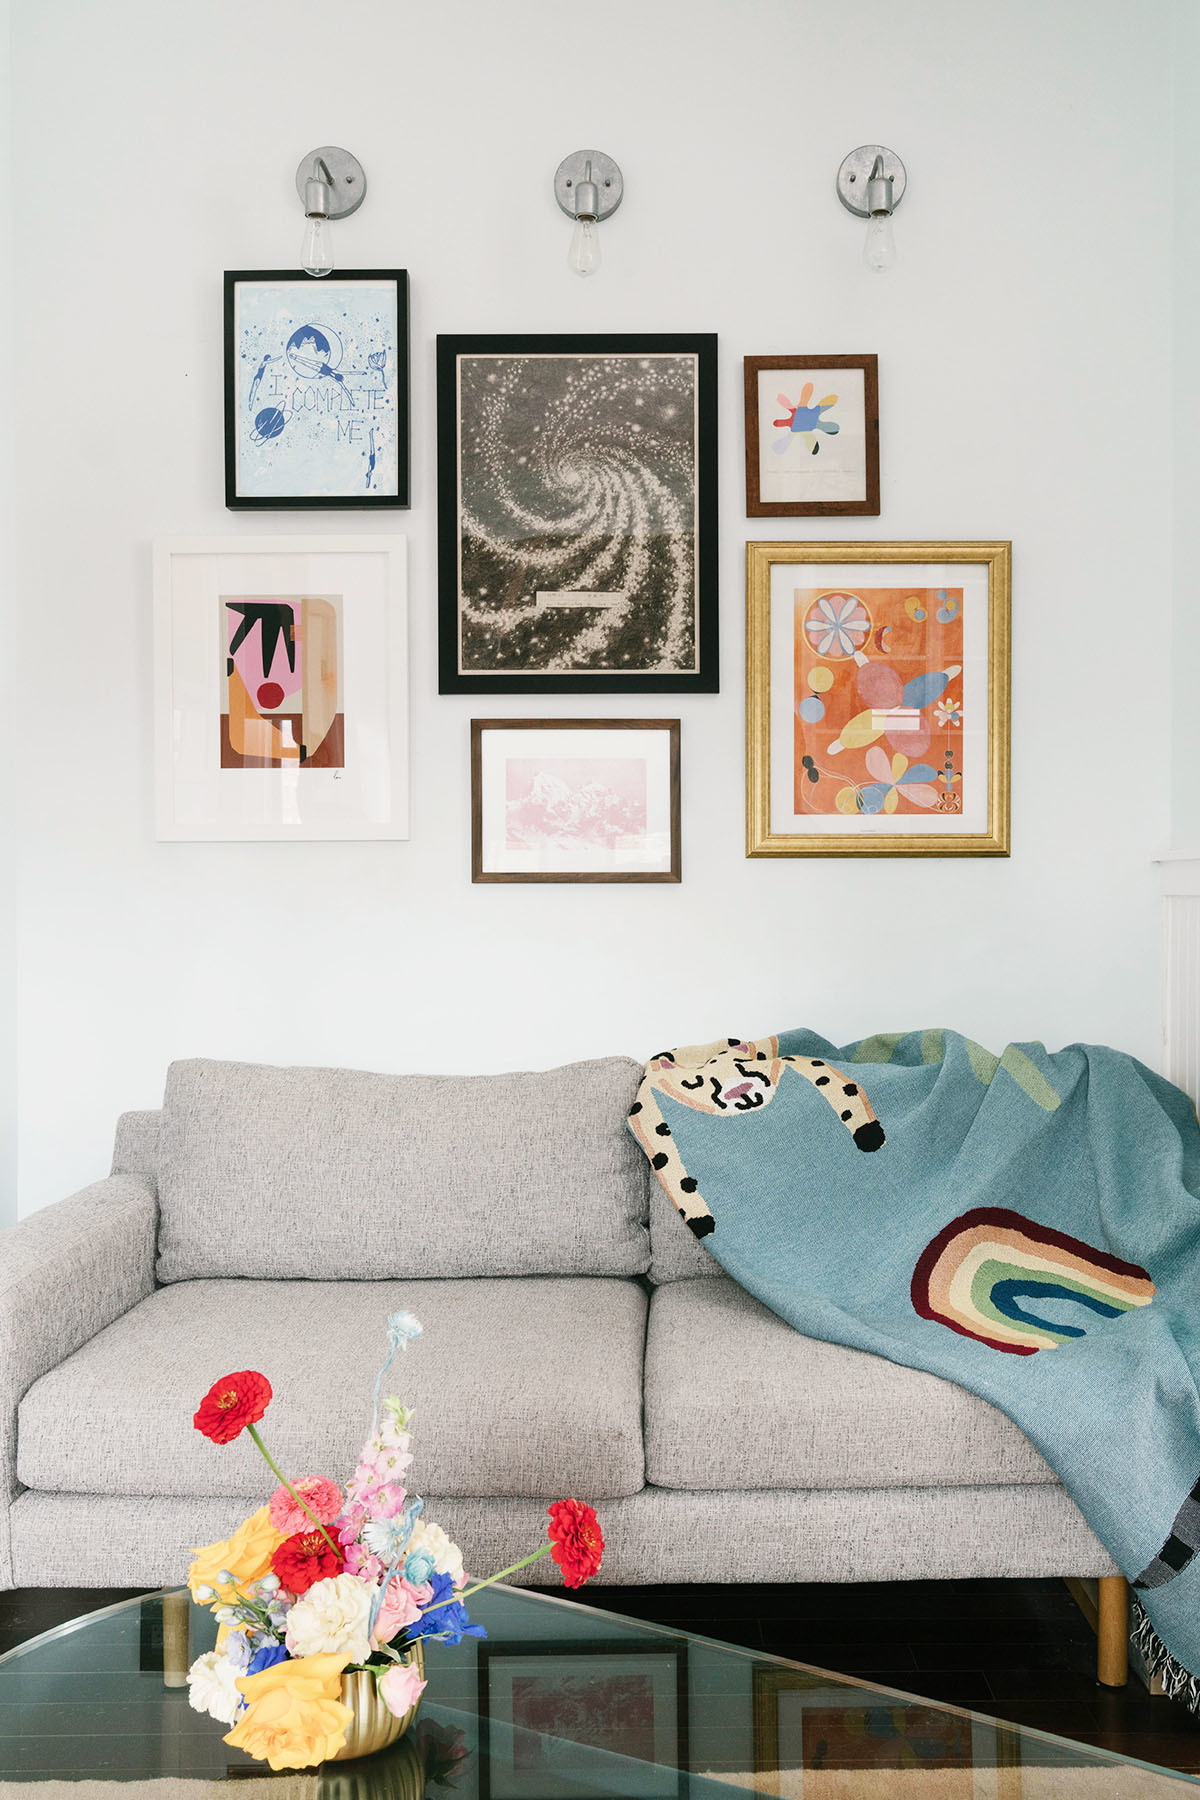 A makeshift gallery wall — complete with unique works of art and pieces Li's acquired over time — hold pride of place in the living room. West Elm Love Seat | Jarmel for Urban Outfitters Throw | Noguchi Coffee Table | Cold Picnic Rug | Lindsay Arakawa Print | Guggenheim Poster | Easy Does It Artwork | Jamali Garden Vase.